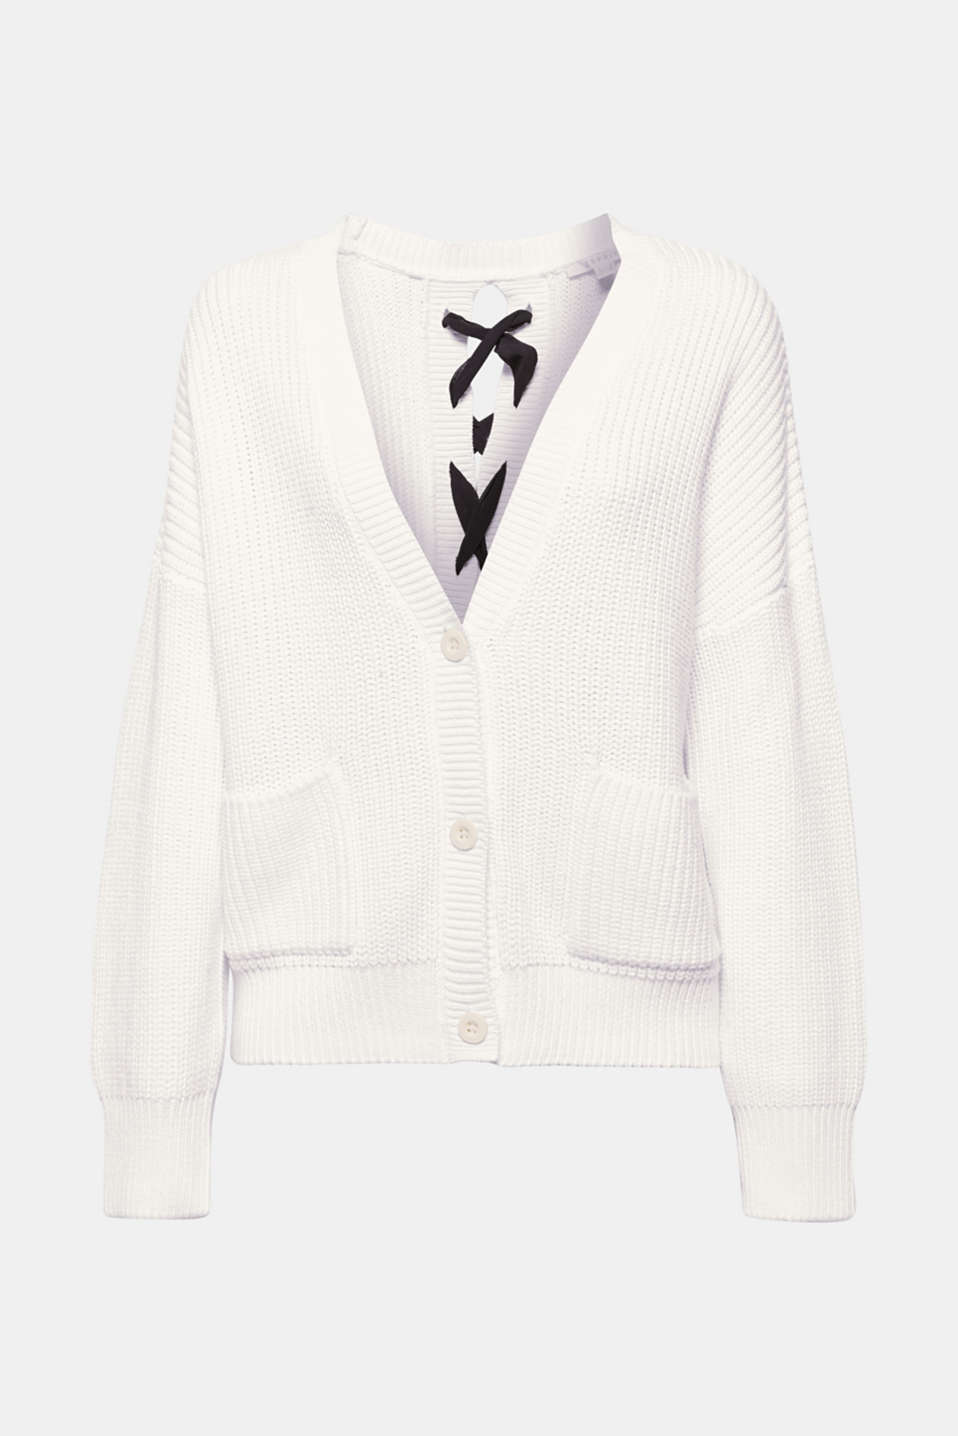 Sporty at the front, sophisticated at the back: The lacing with chiffon bands ensures this cardigan has a new look!